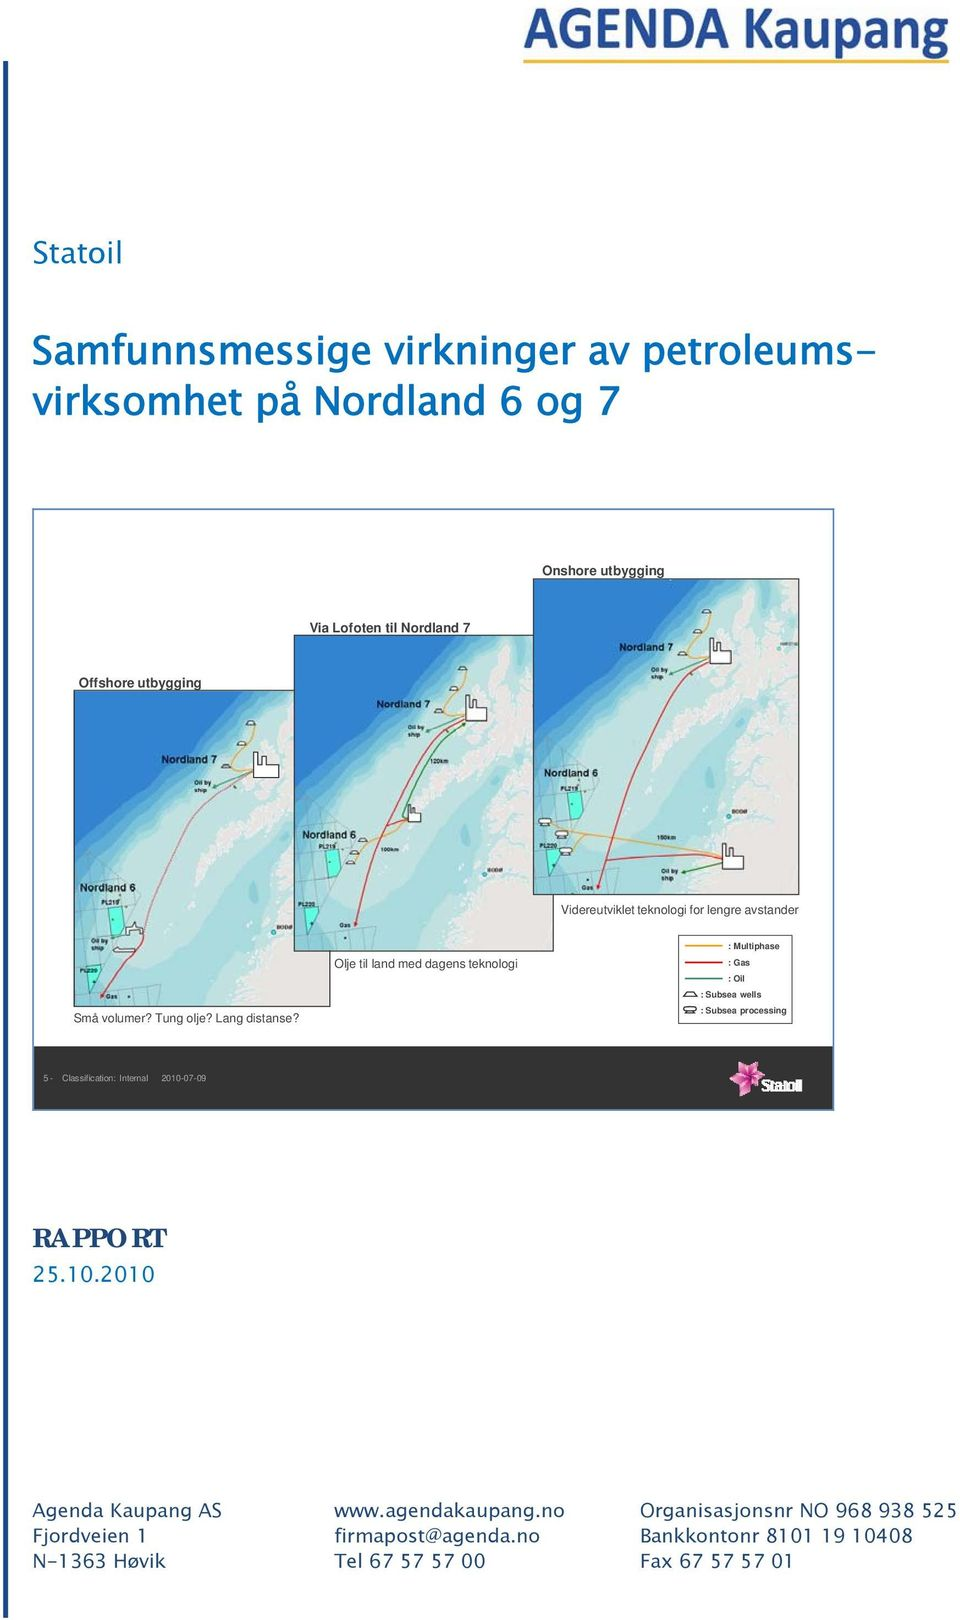 Olje til land med dagens teknologi : Multiphase : Gas : Oil : Subsea wells : Subsea processing 5 - Classification: Internal 2010-07-09